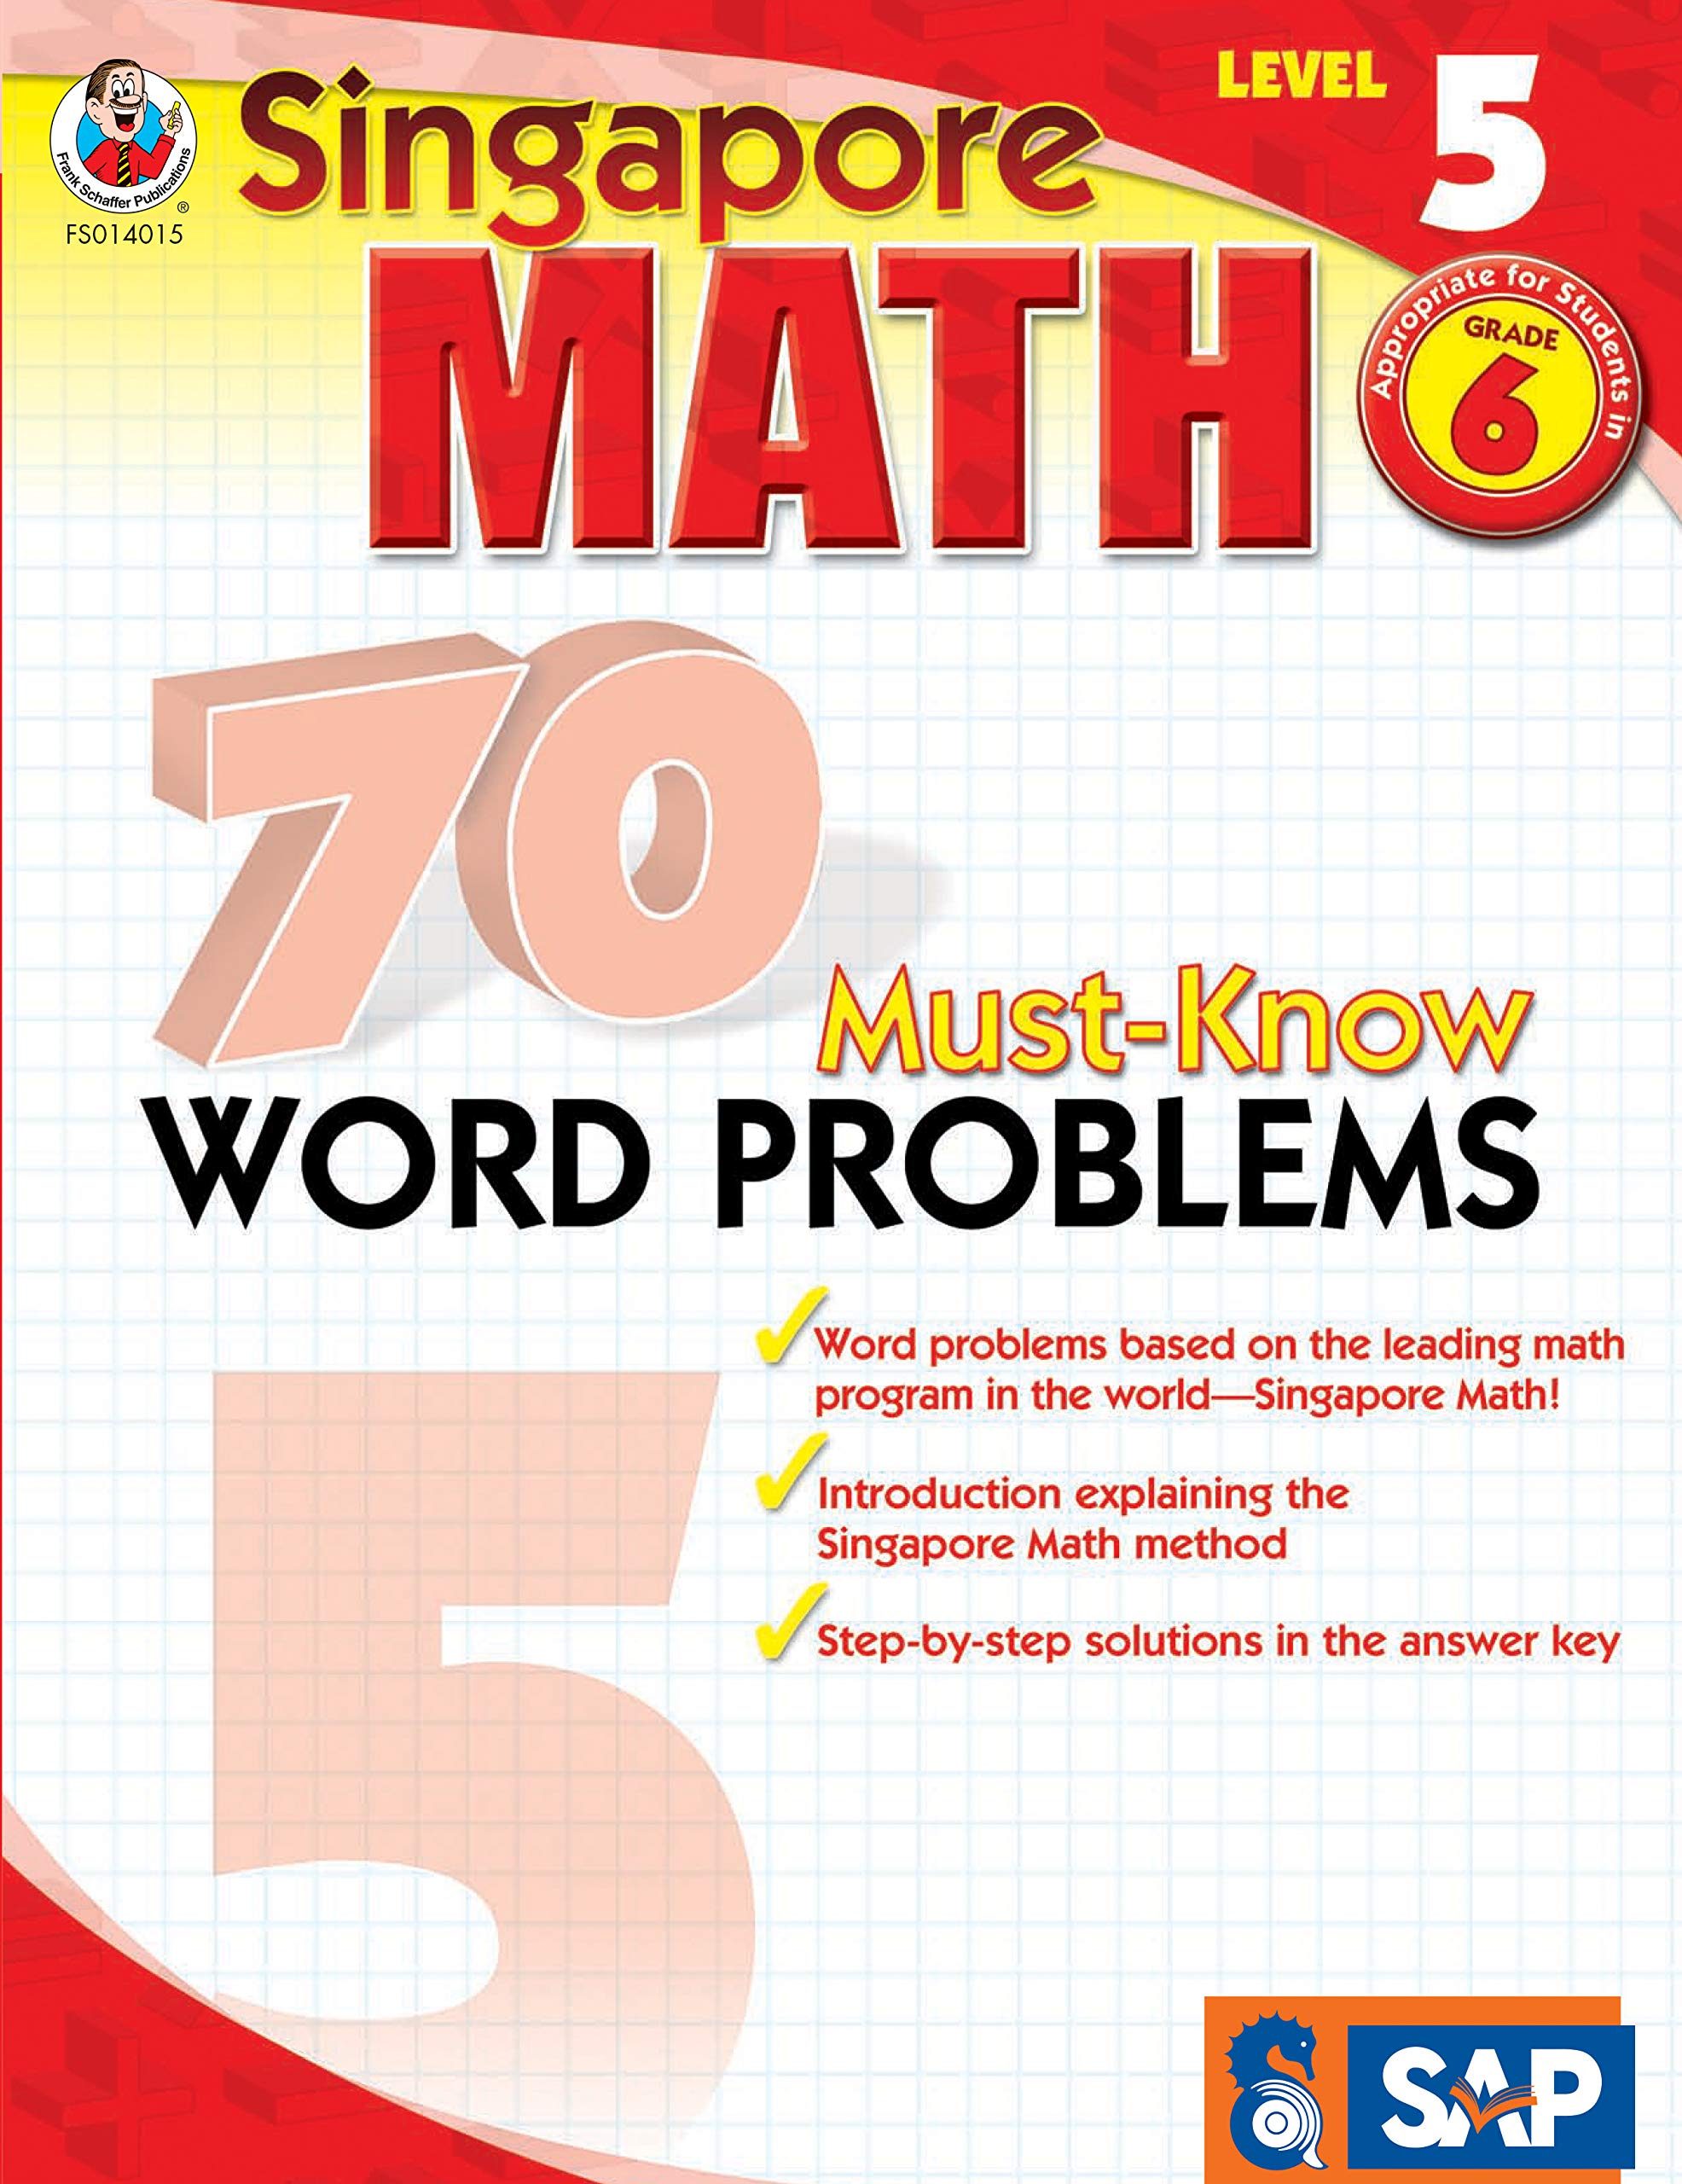 Singapore Math - 70 Must-Know Word Problems Workbook for 6th ...